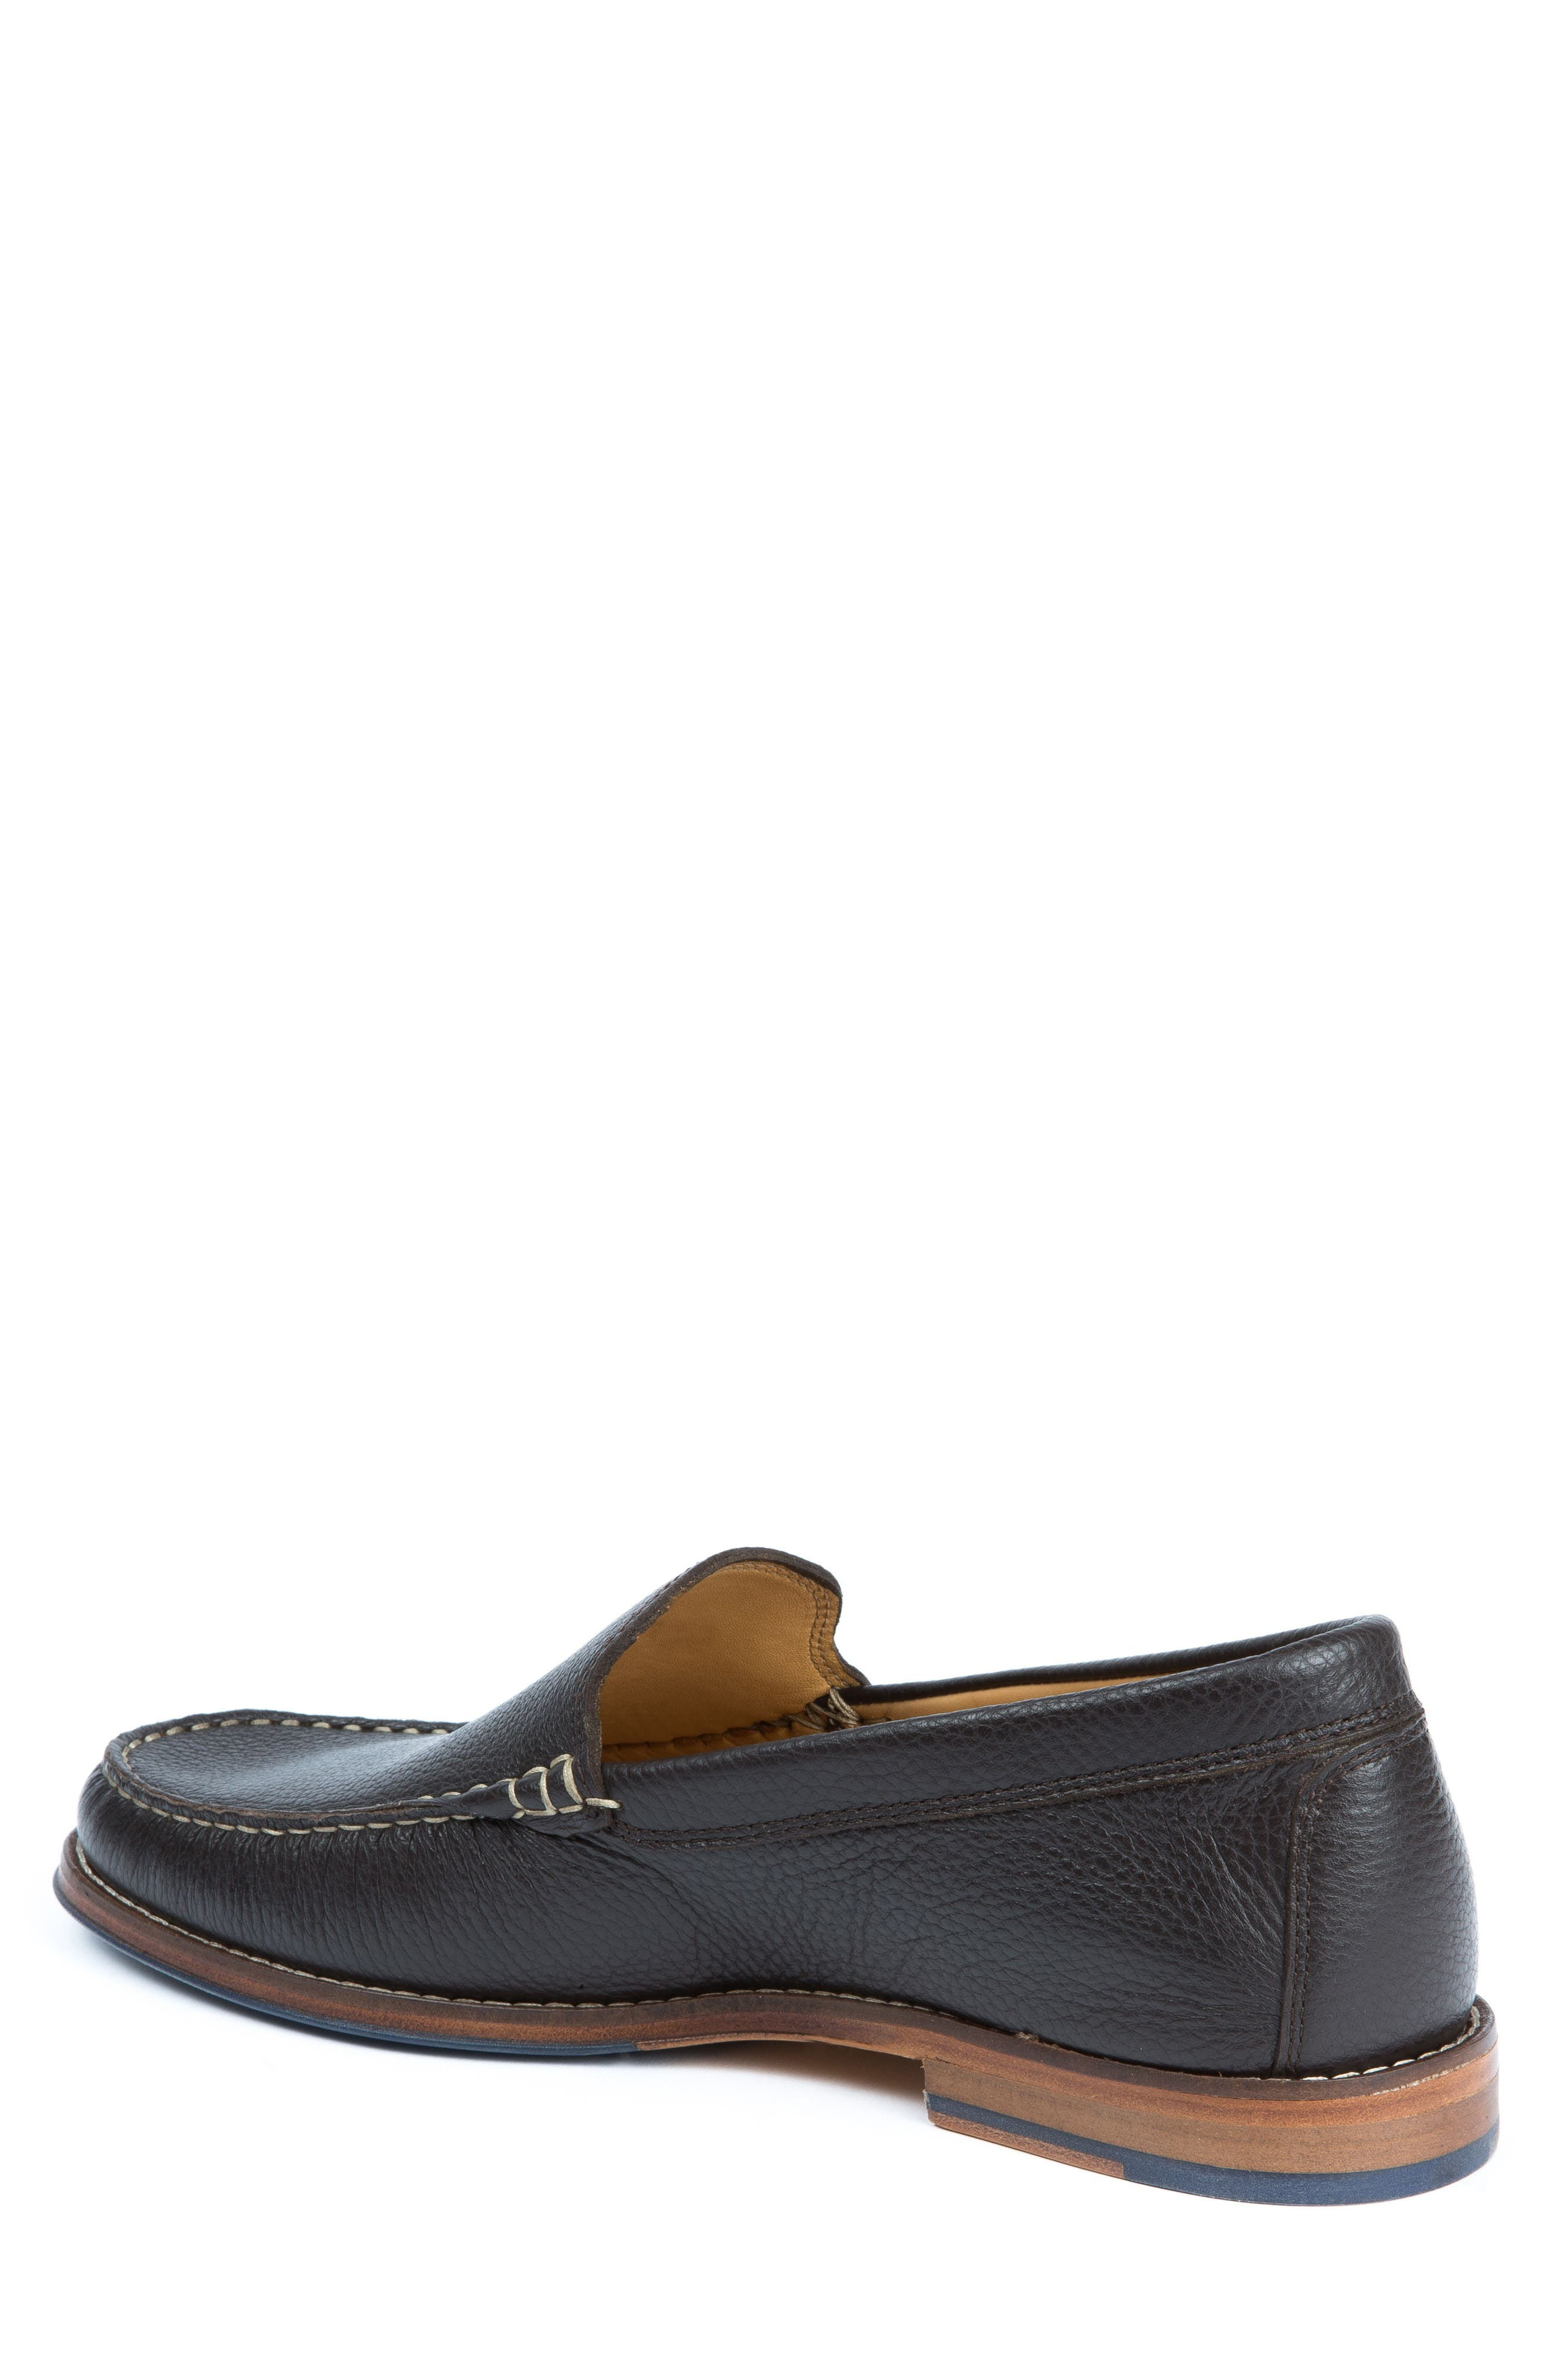 Alternate Image 2  - Austen Heller Caldwells Loafer (Men)